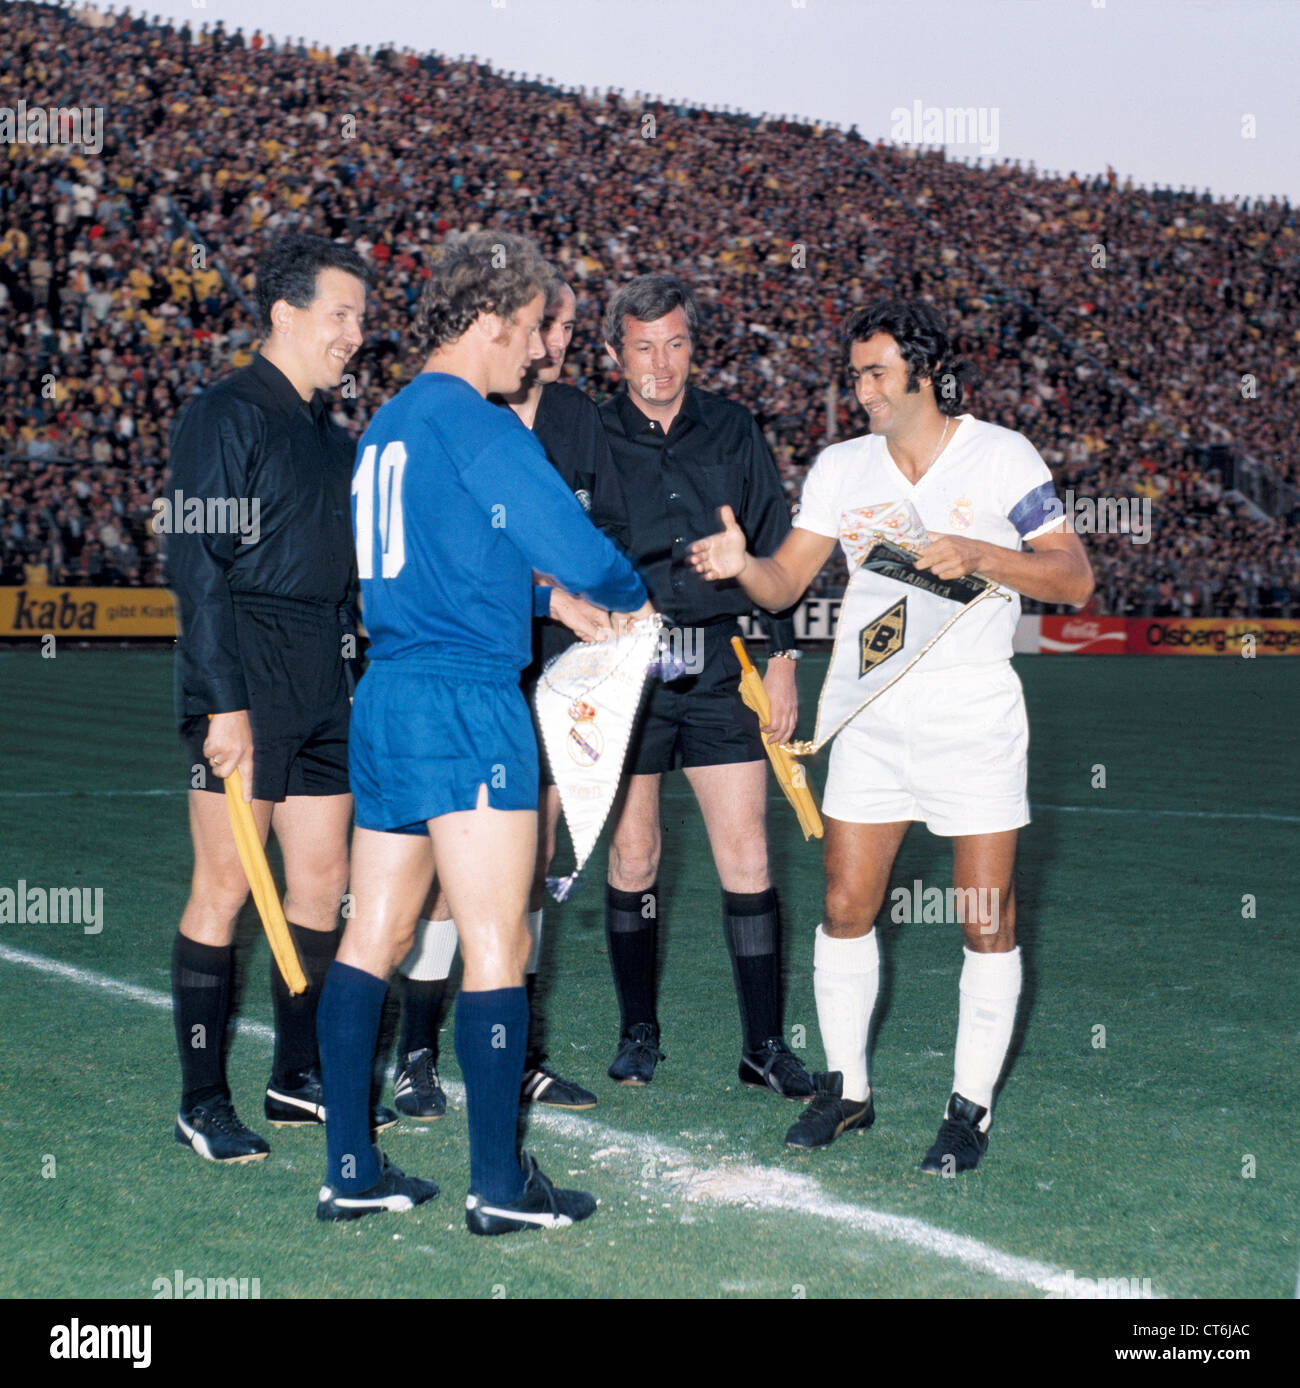 sports football, 1973, Borussia Moenchengladbach versus Real Madrid 4:2, Boekelberg Stadium in Moenchengladbach, - Stock Image